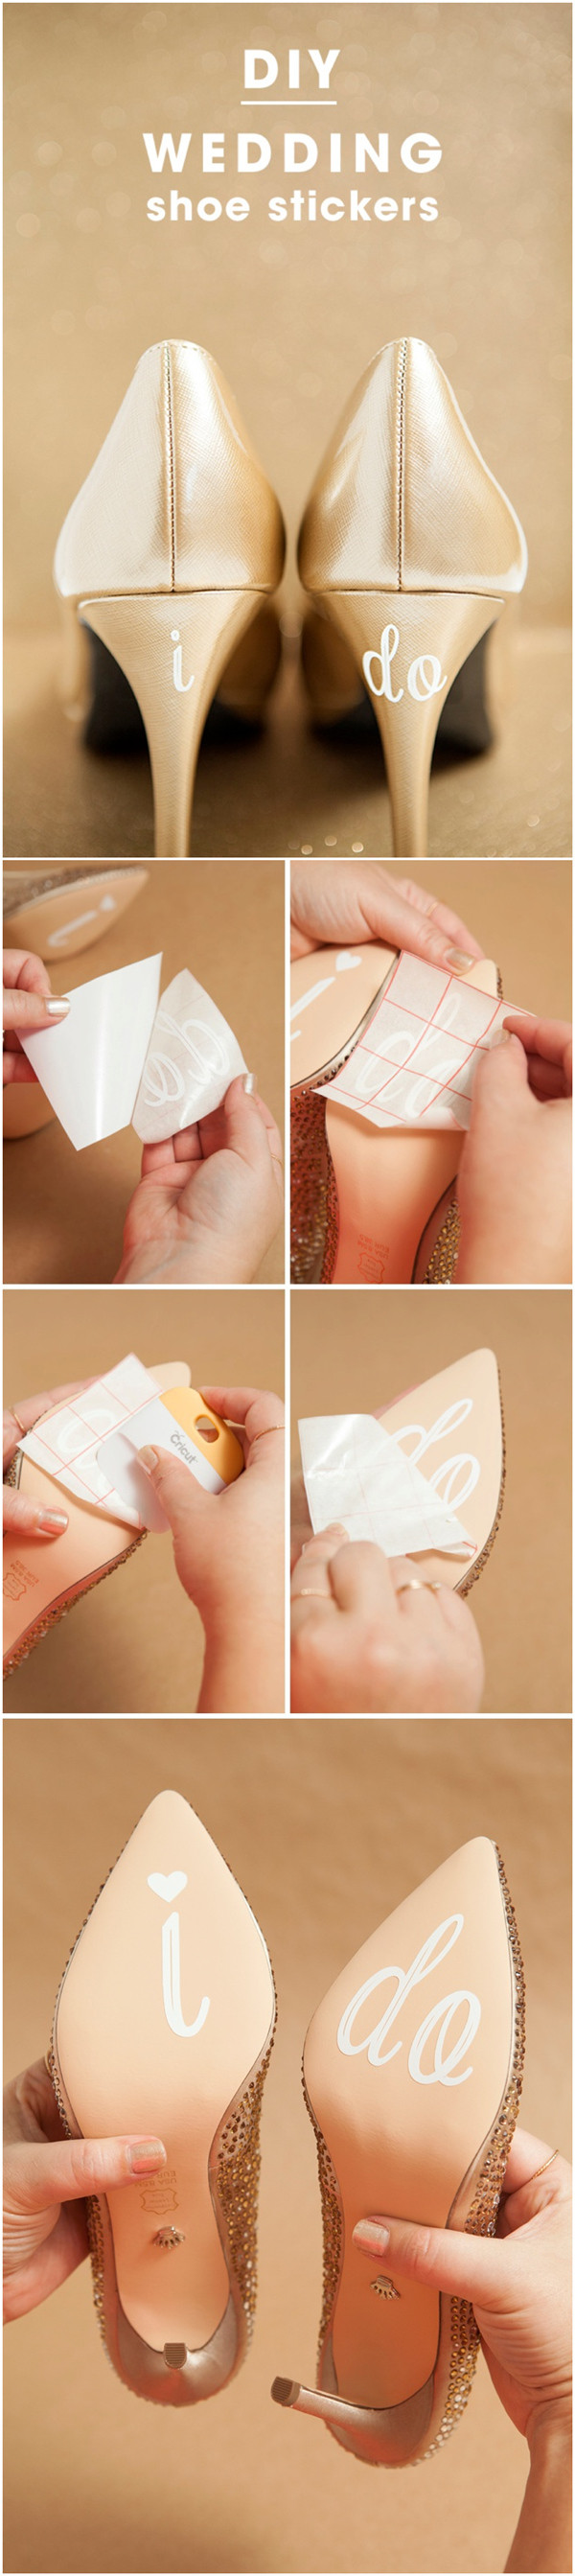 super easy diy wedding shoes stickers